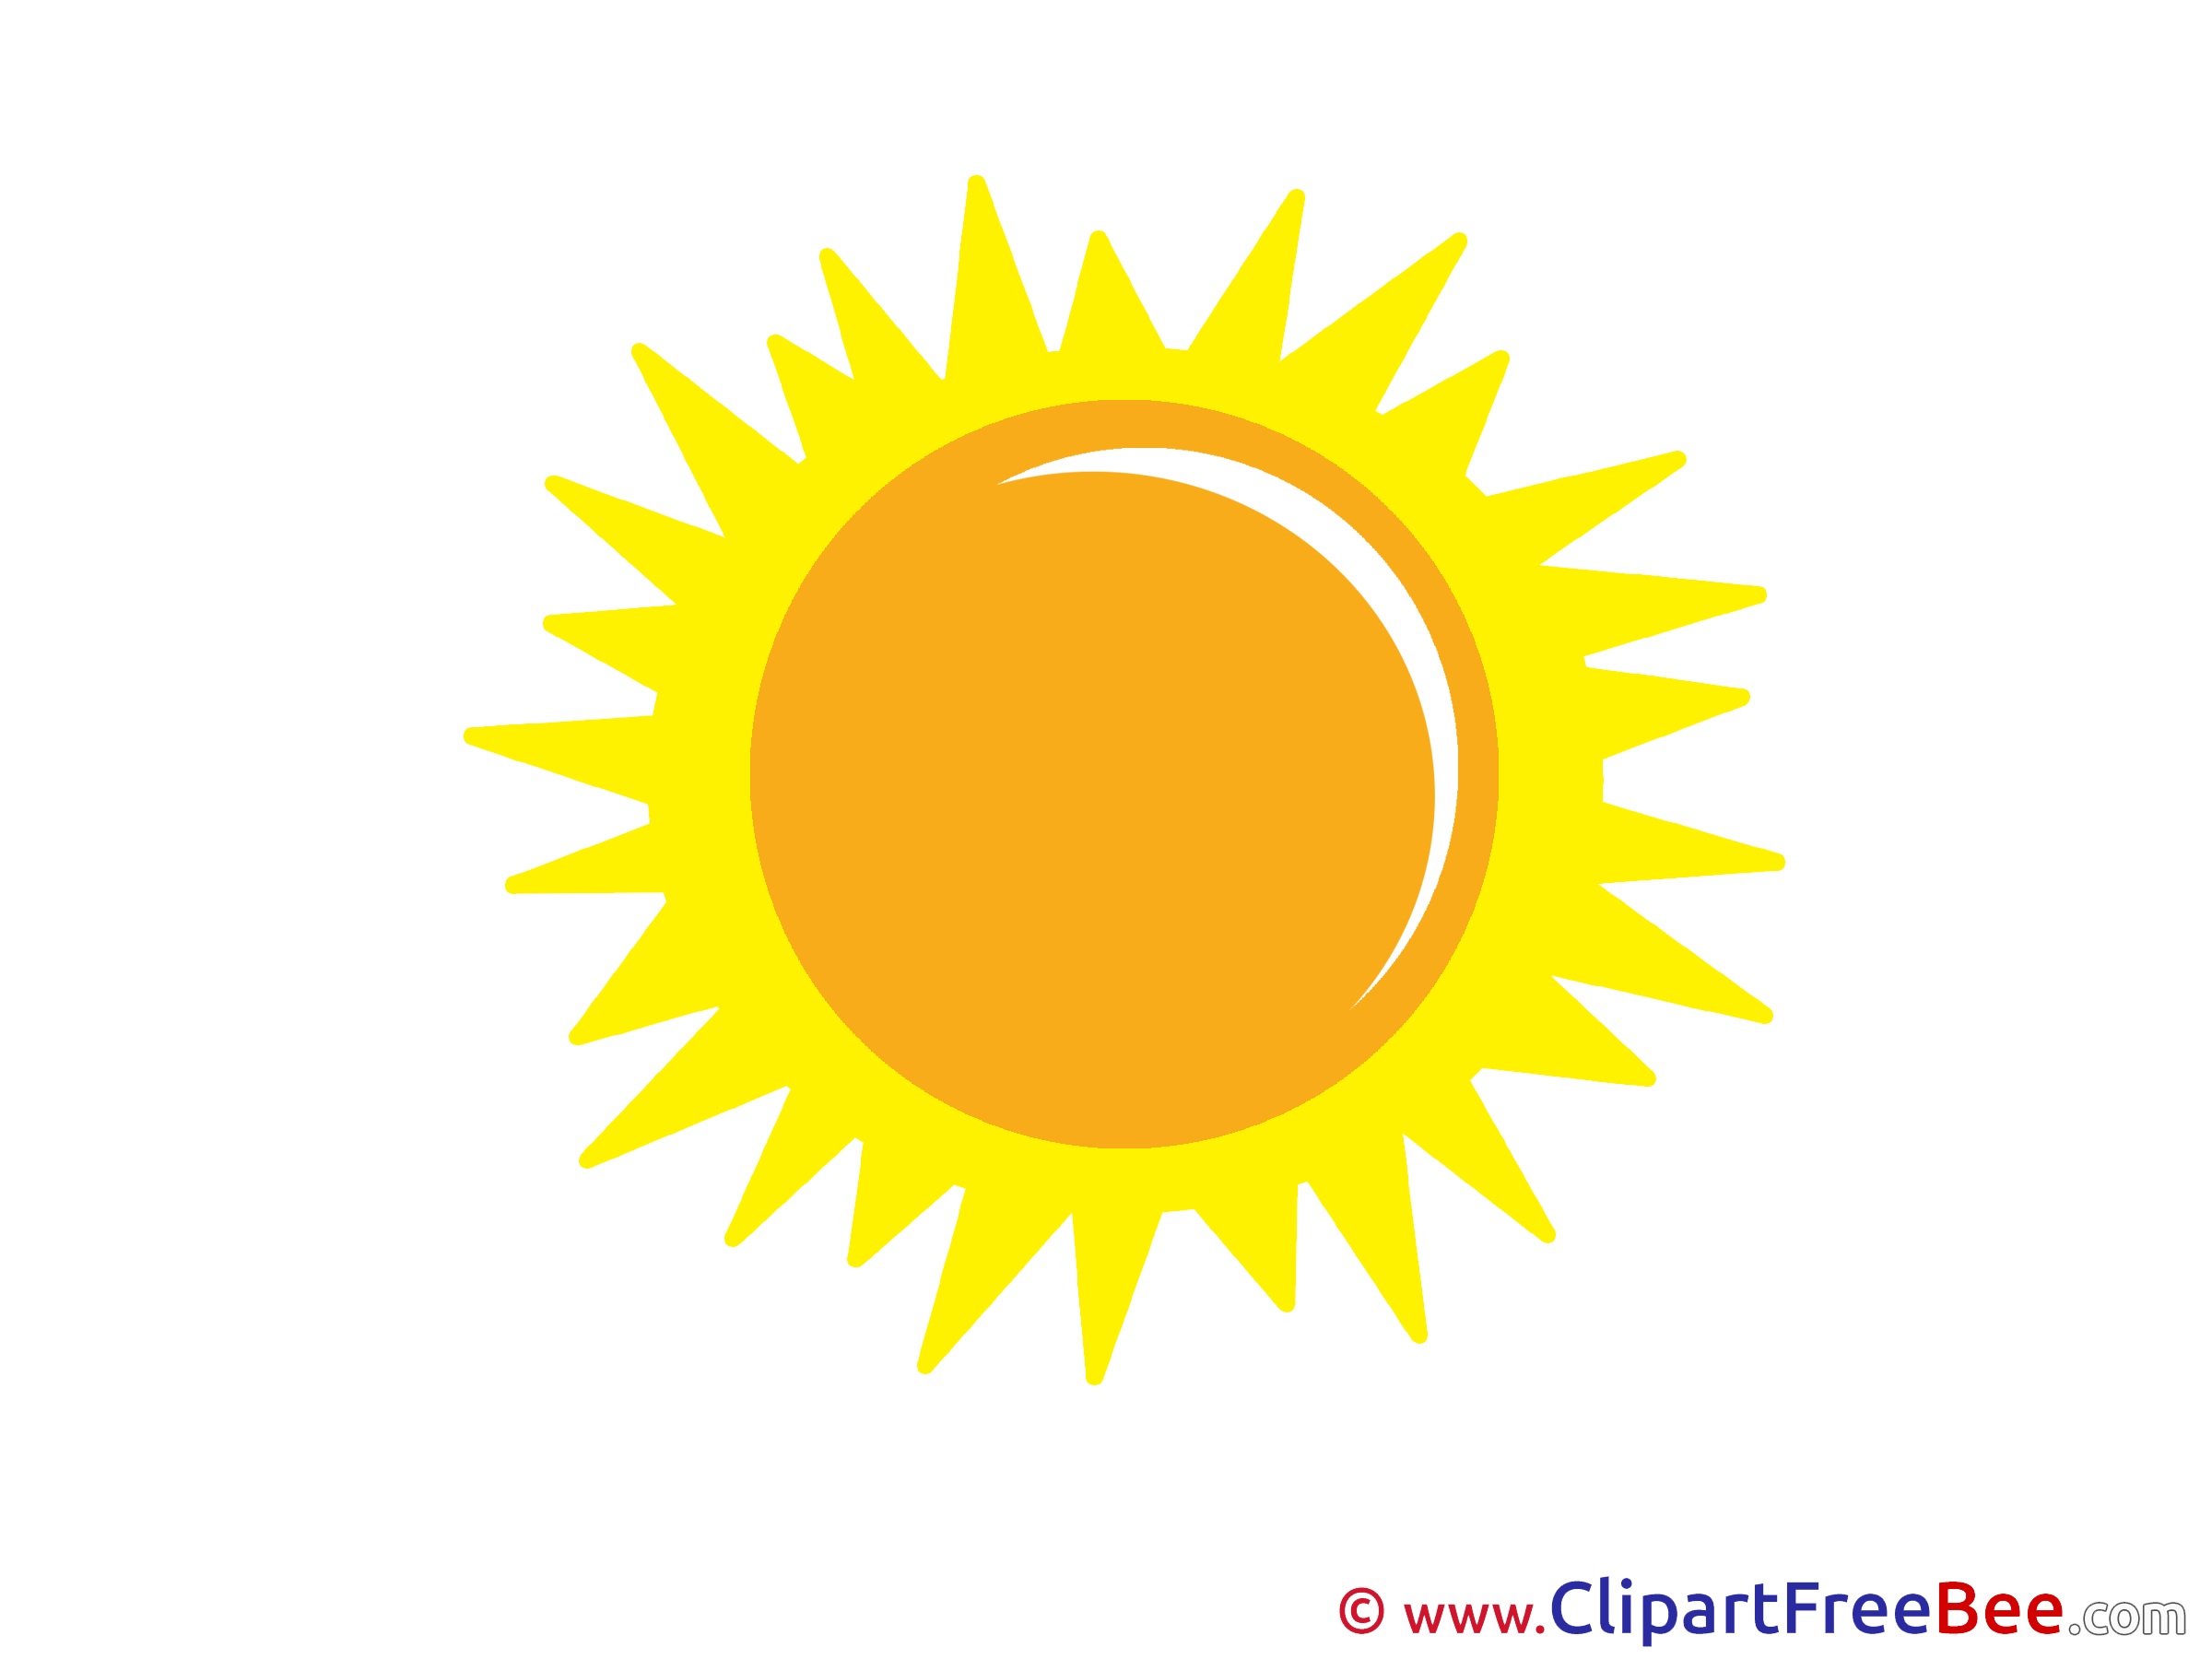 Sun Clipart free Image download